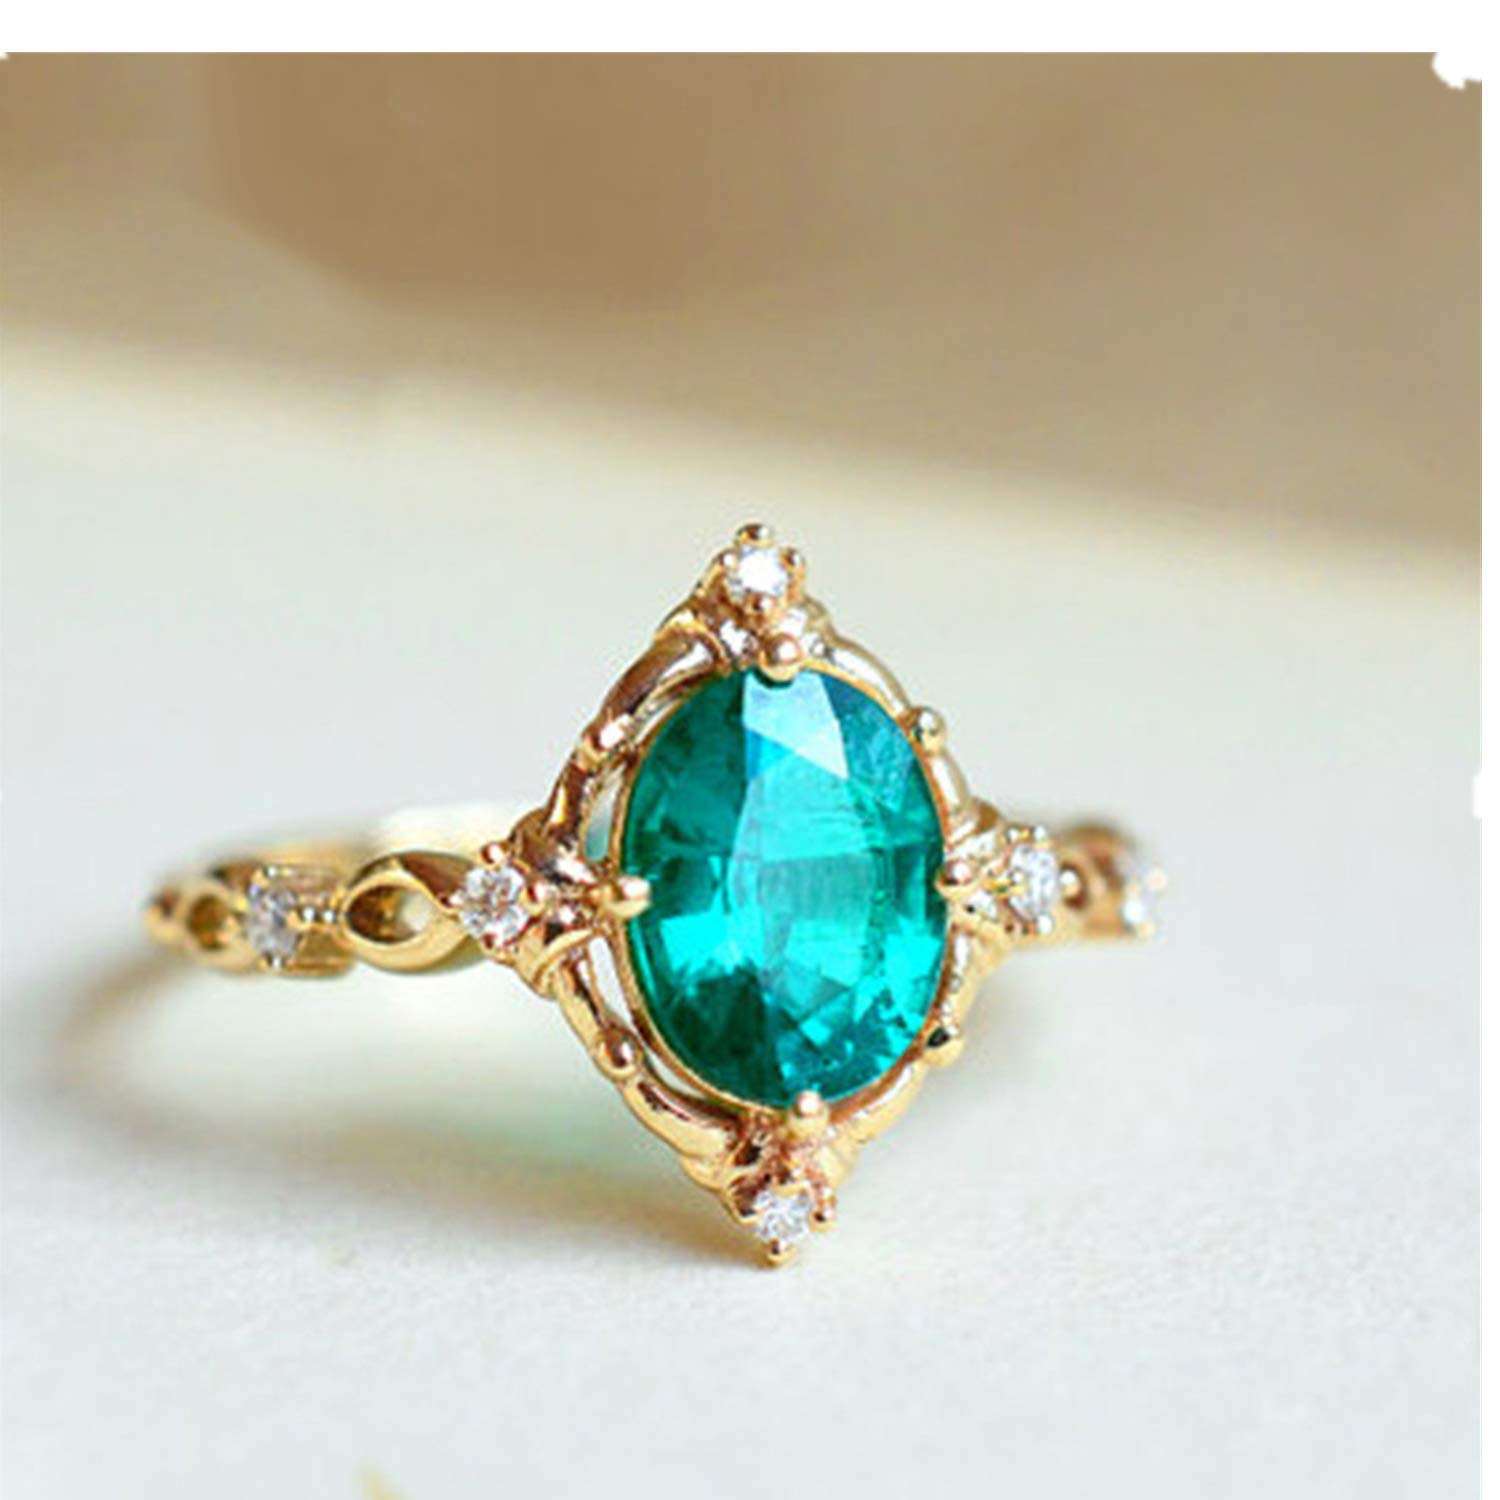 HUAMING Fashion New Egg Shaped Green Sapphire Simple Gold Ring Vintage Stack Boho Rings Knuckle Ring Jewelry for Women (Gold, 8)